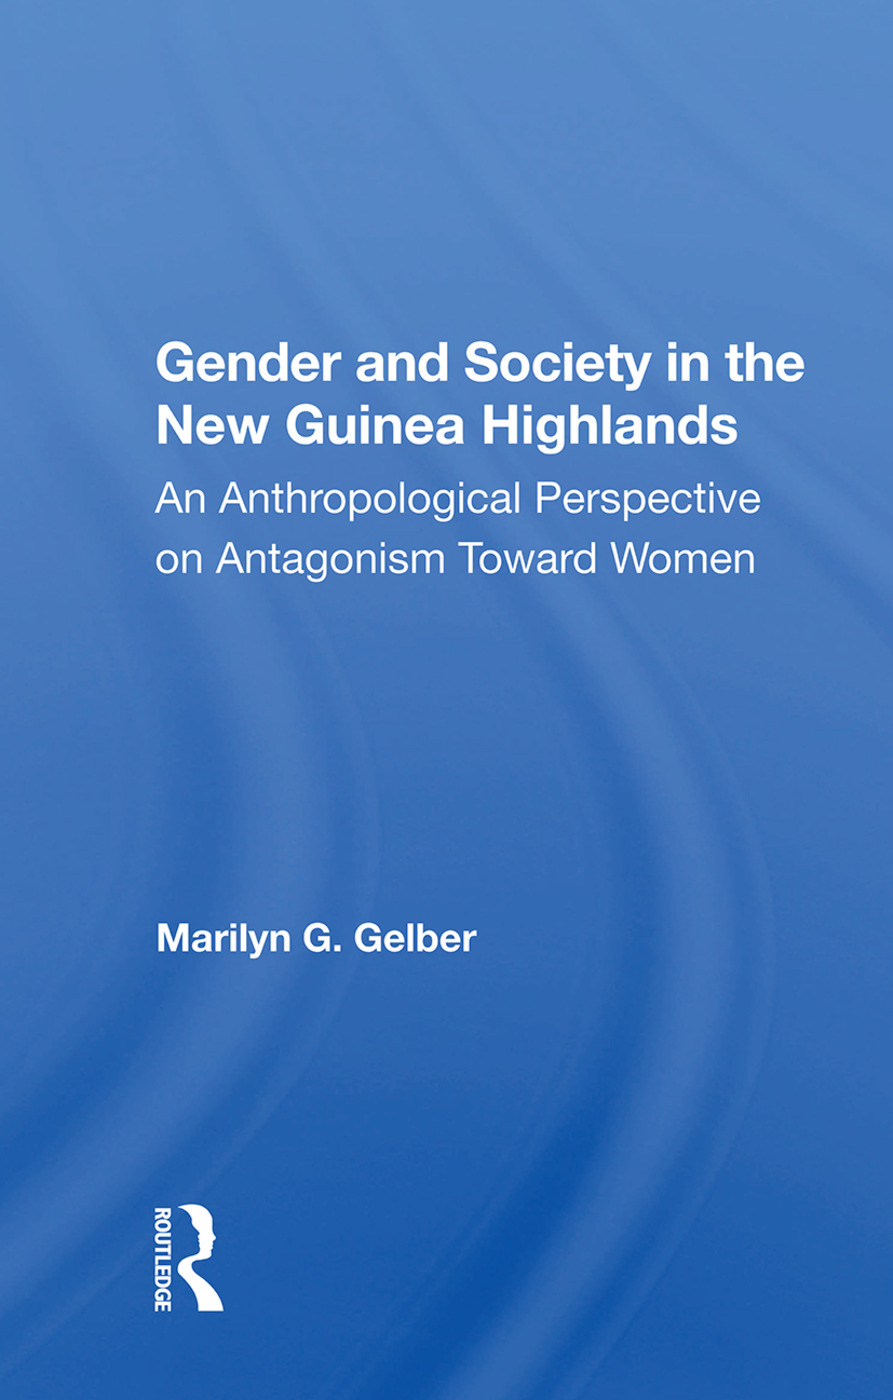 Gender And Society In The New Guinea Highlands: An Anthropological Perspective On Antagonism Toward Women book cover